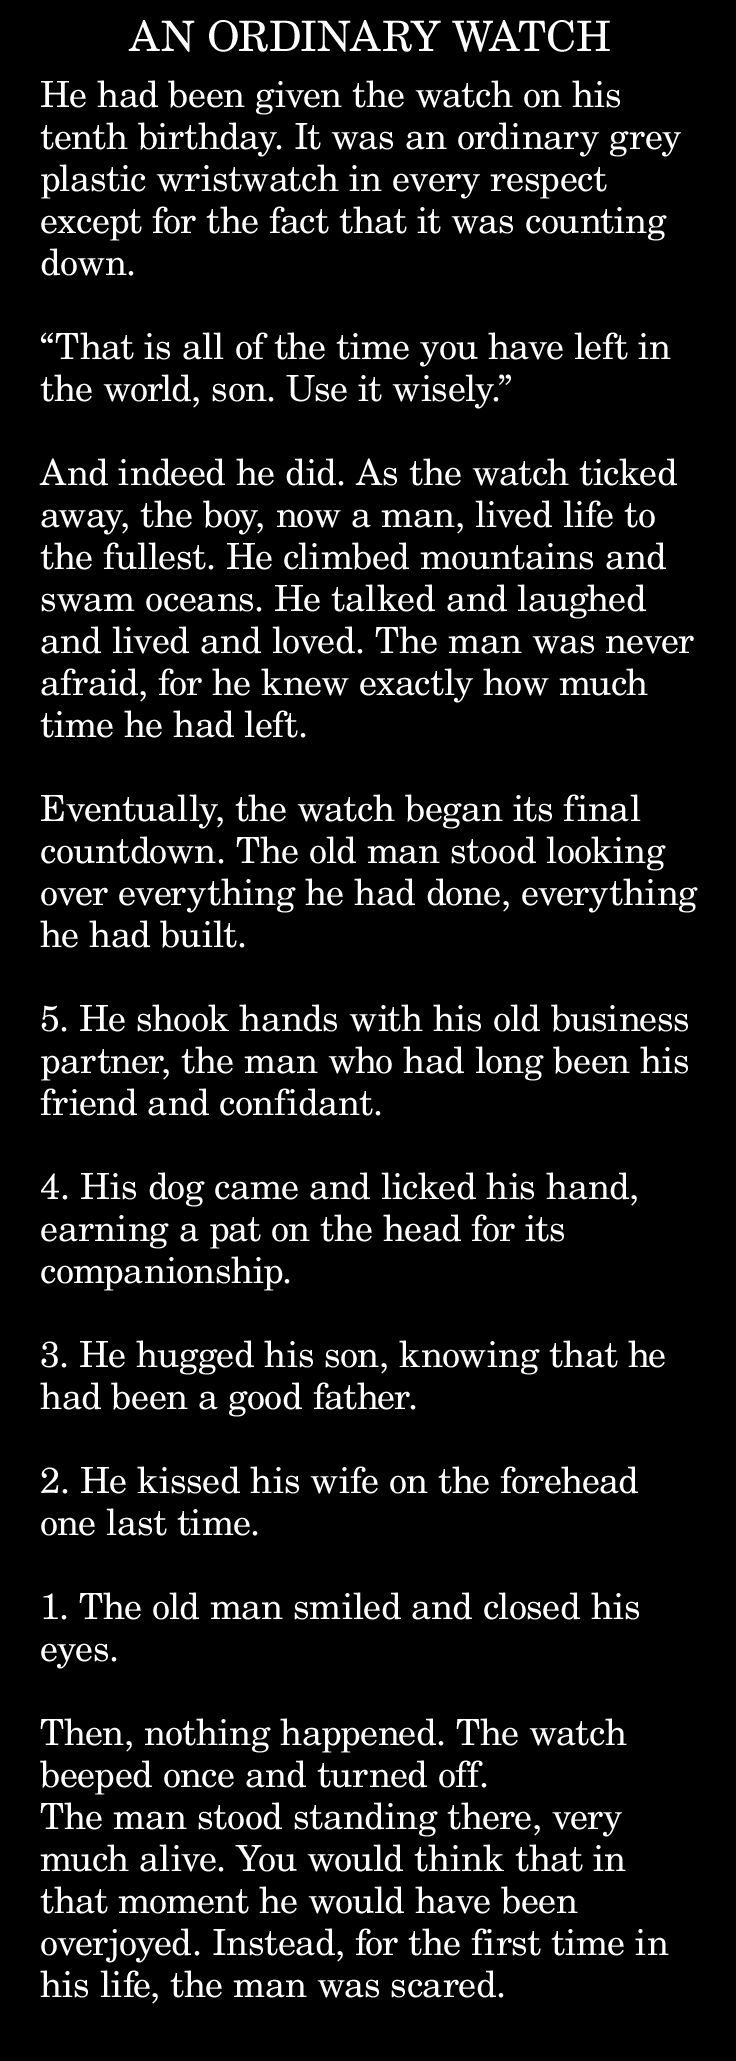 Short story from defunct website - author unknown  If you know the author, please leave information in comments